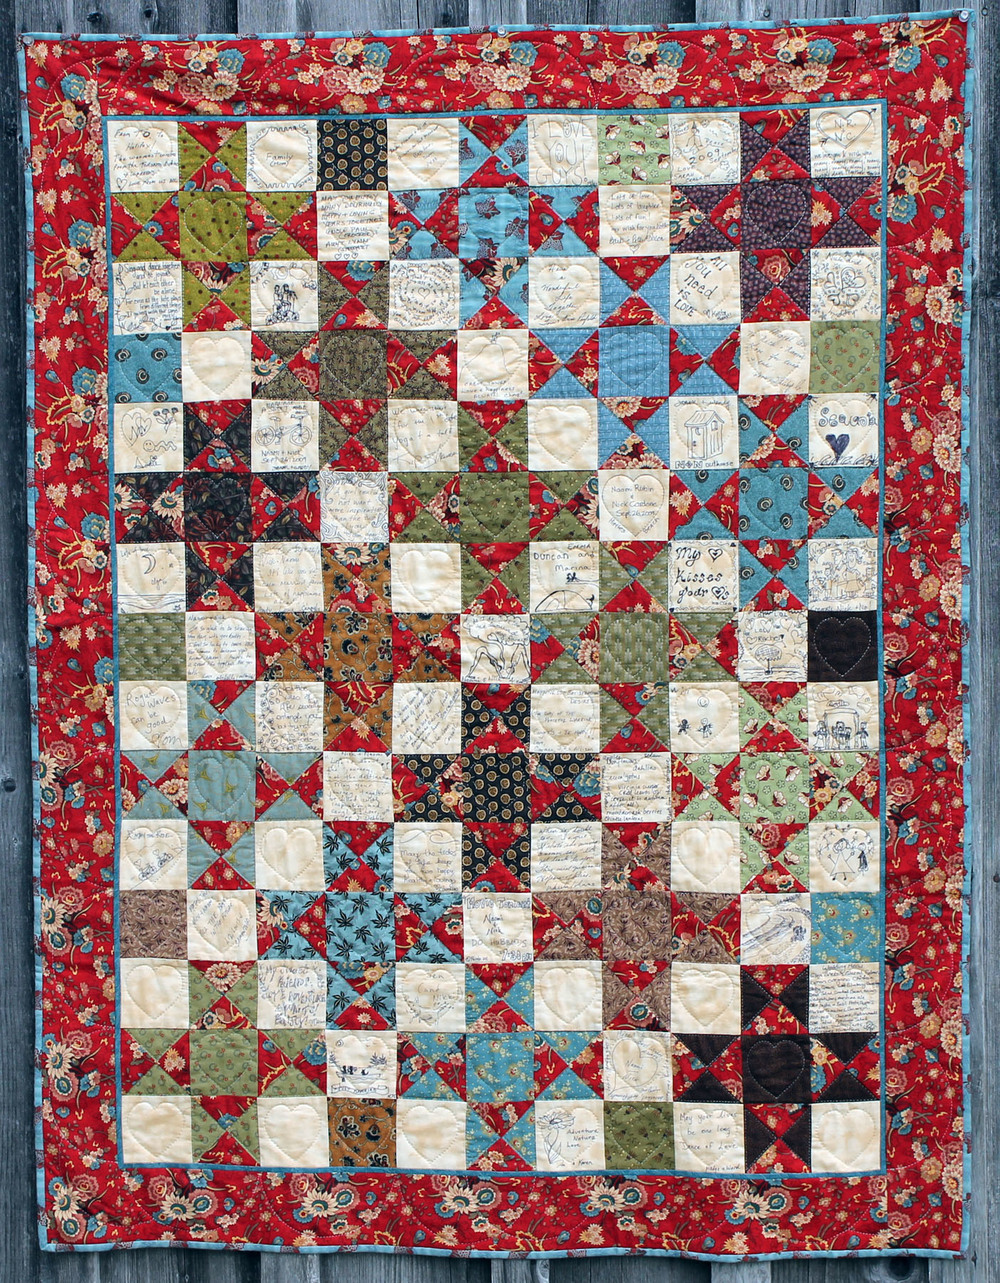 Naomi and Nick's wedding quilt